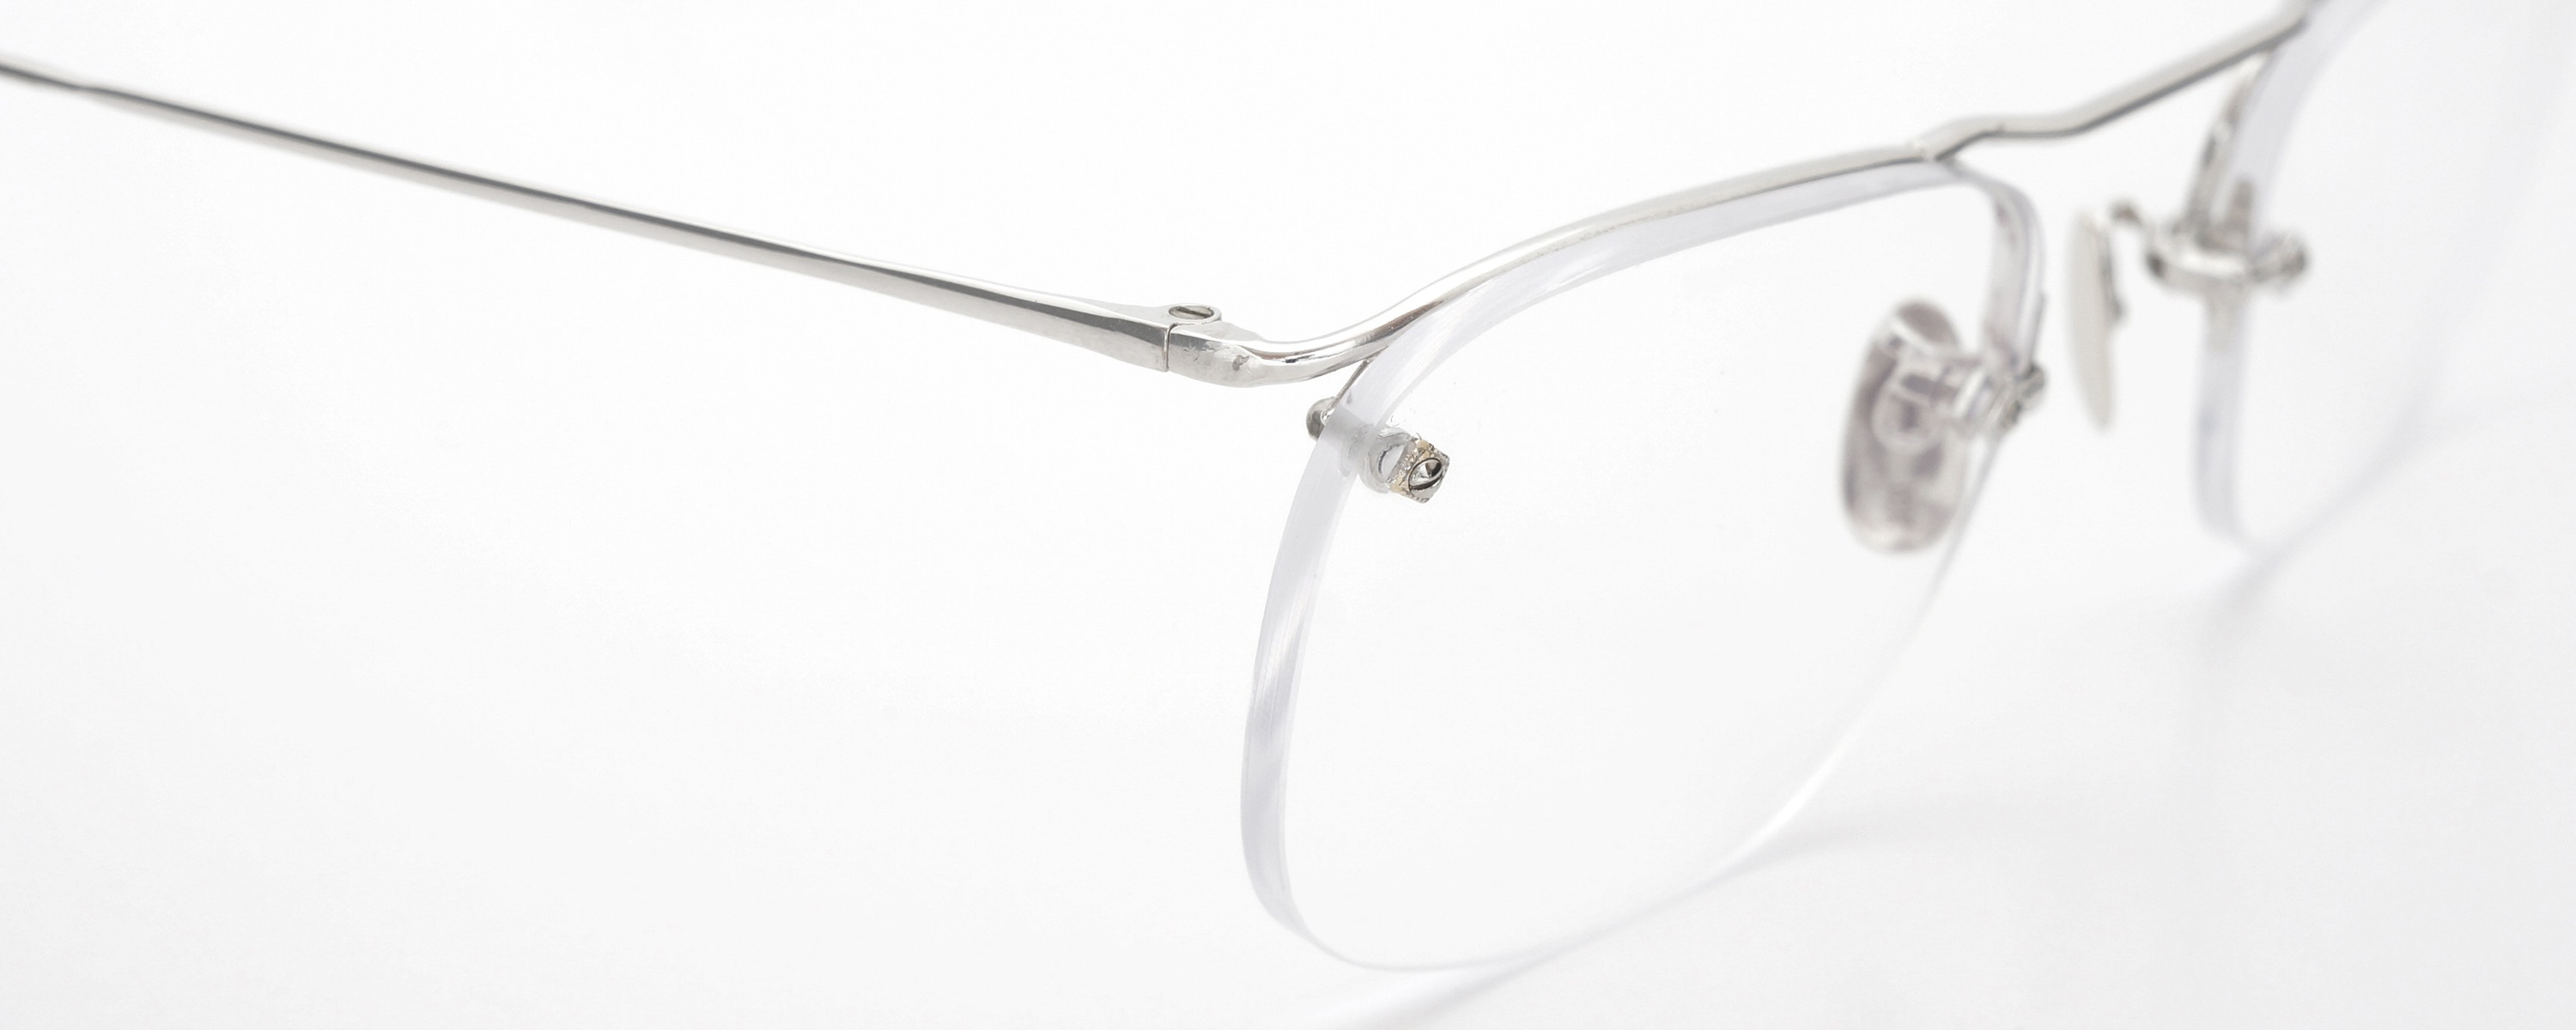 The Spectacle メガネ 1940 American Optical Everjax Bar Sterling WG 12kPads 49-21 イメージ6